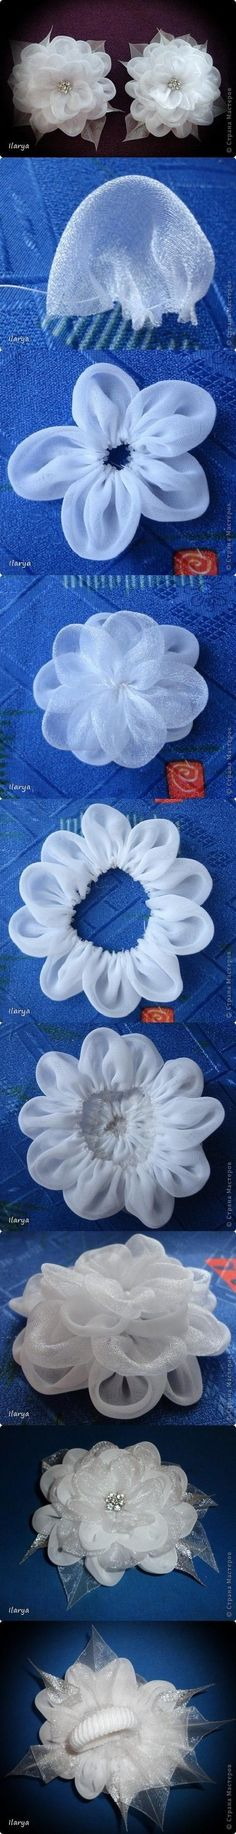 DIY Fabric Lust Flower DIY Projects This would be so cute for a hair pin! Ribbon Art, Ribbon Crafts, Fabric Ribbon, Flower Crafts, Fabric Crafts, Sewing Crafts, Sewing Projects, Diy Projects, Diy Crafts